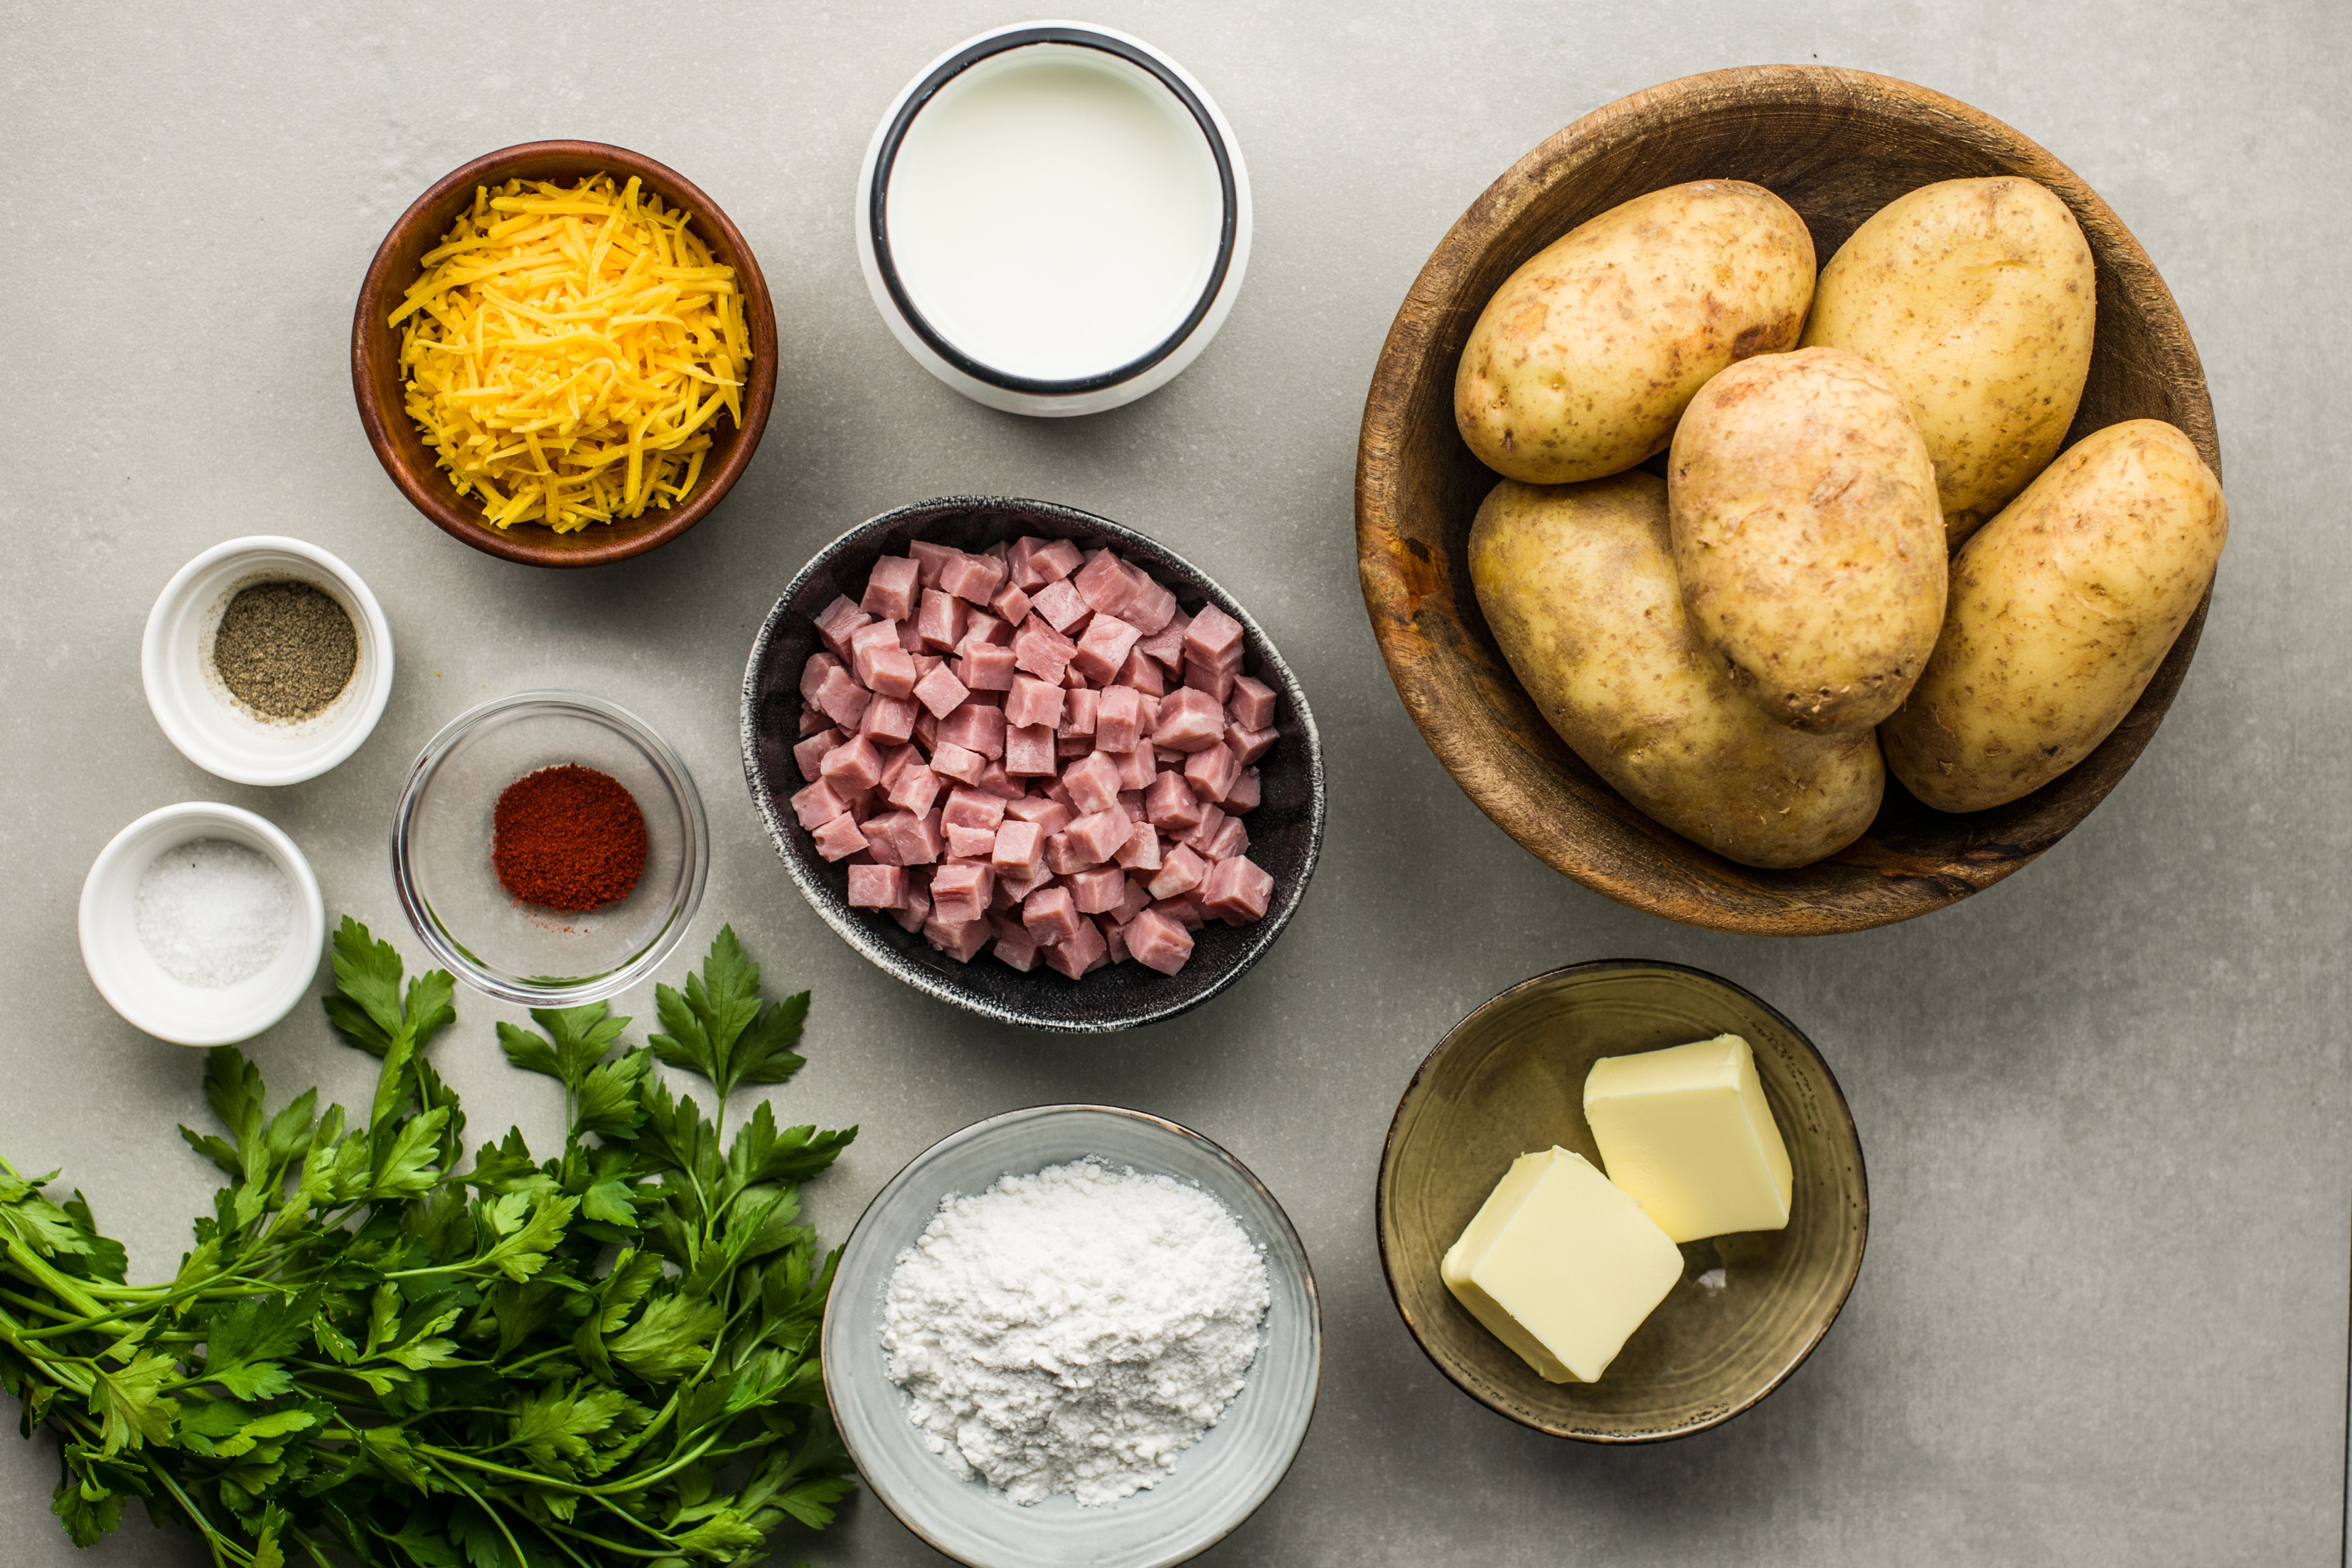 Ingredients for gluten-free scalloped potatoes